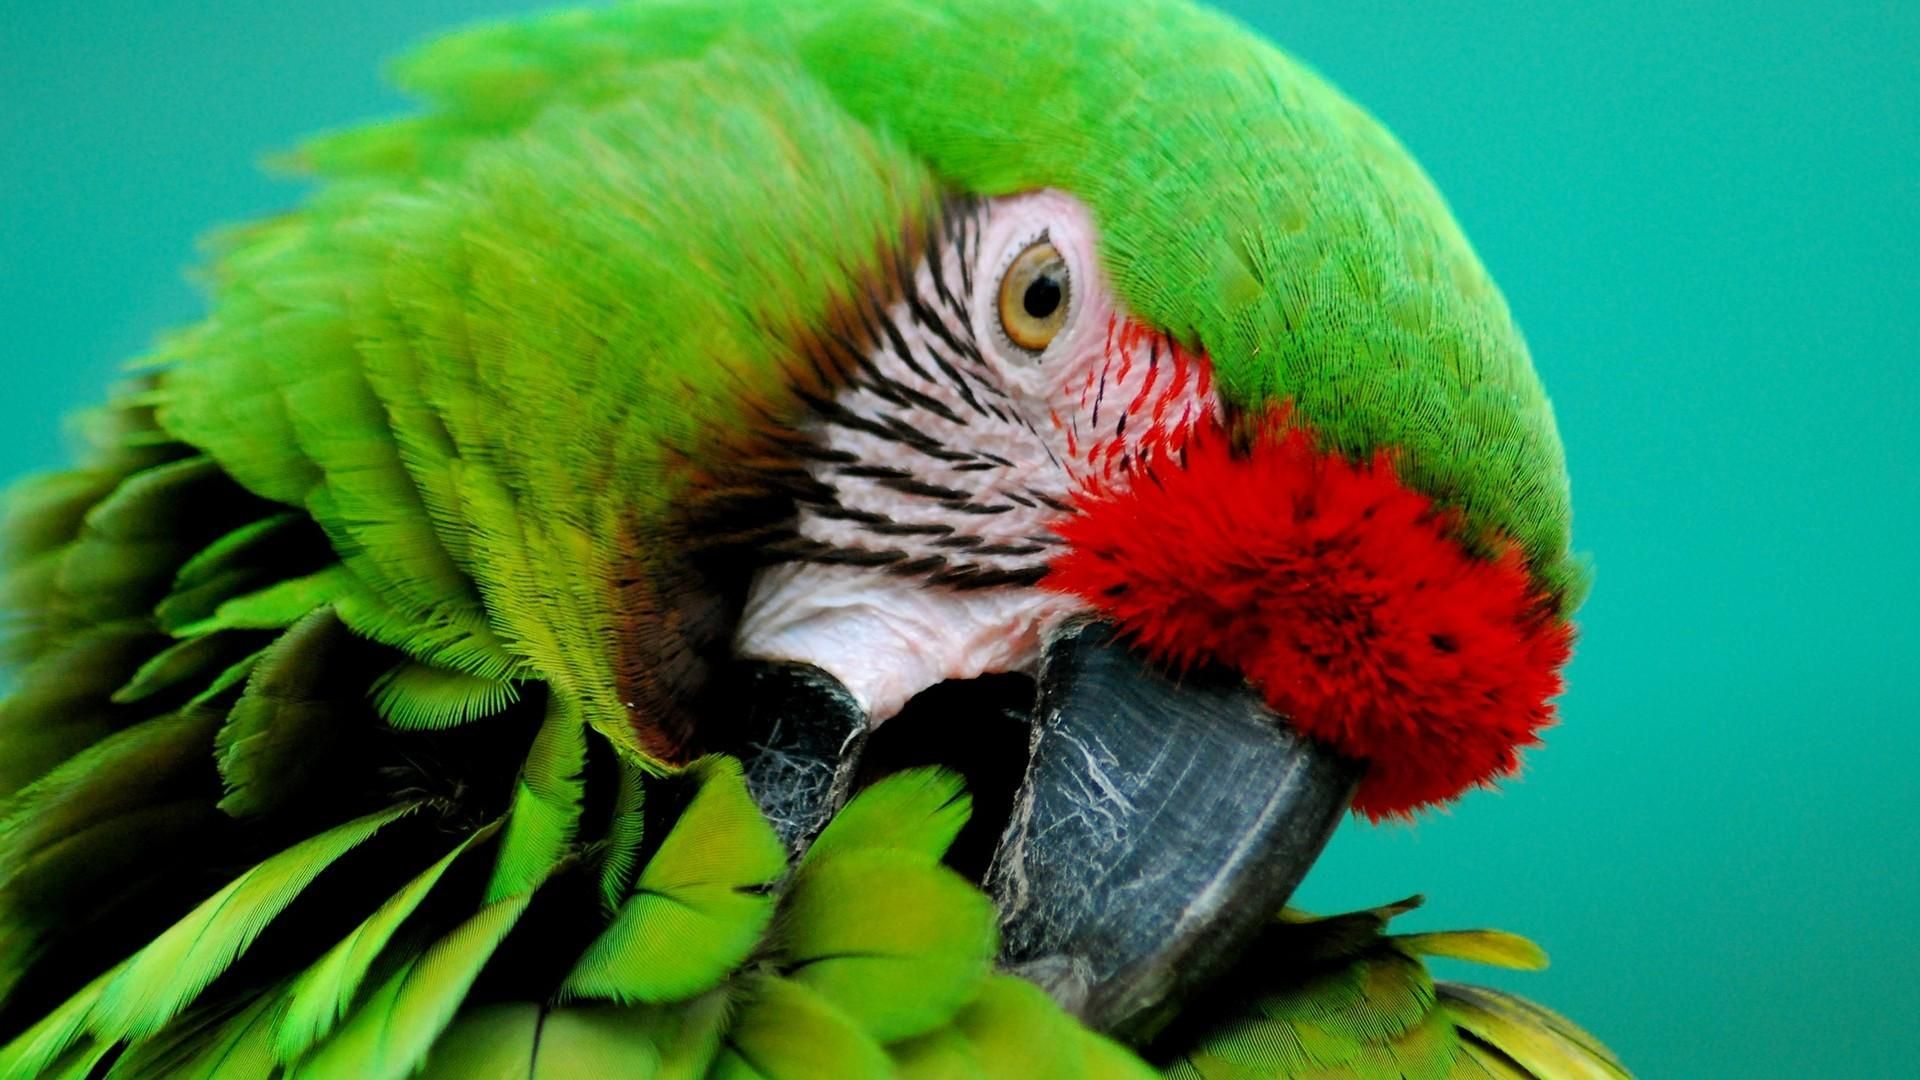 Parakeet wallpaper photo full hd